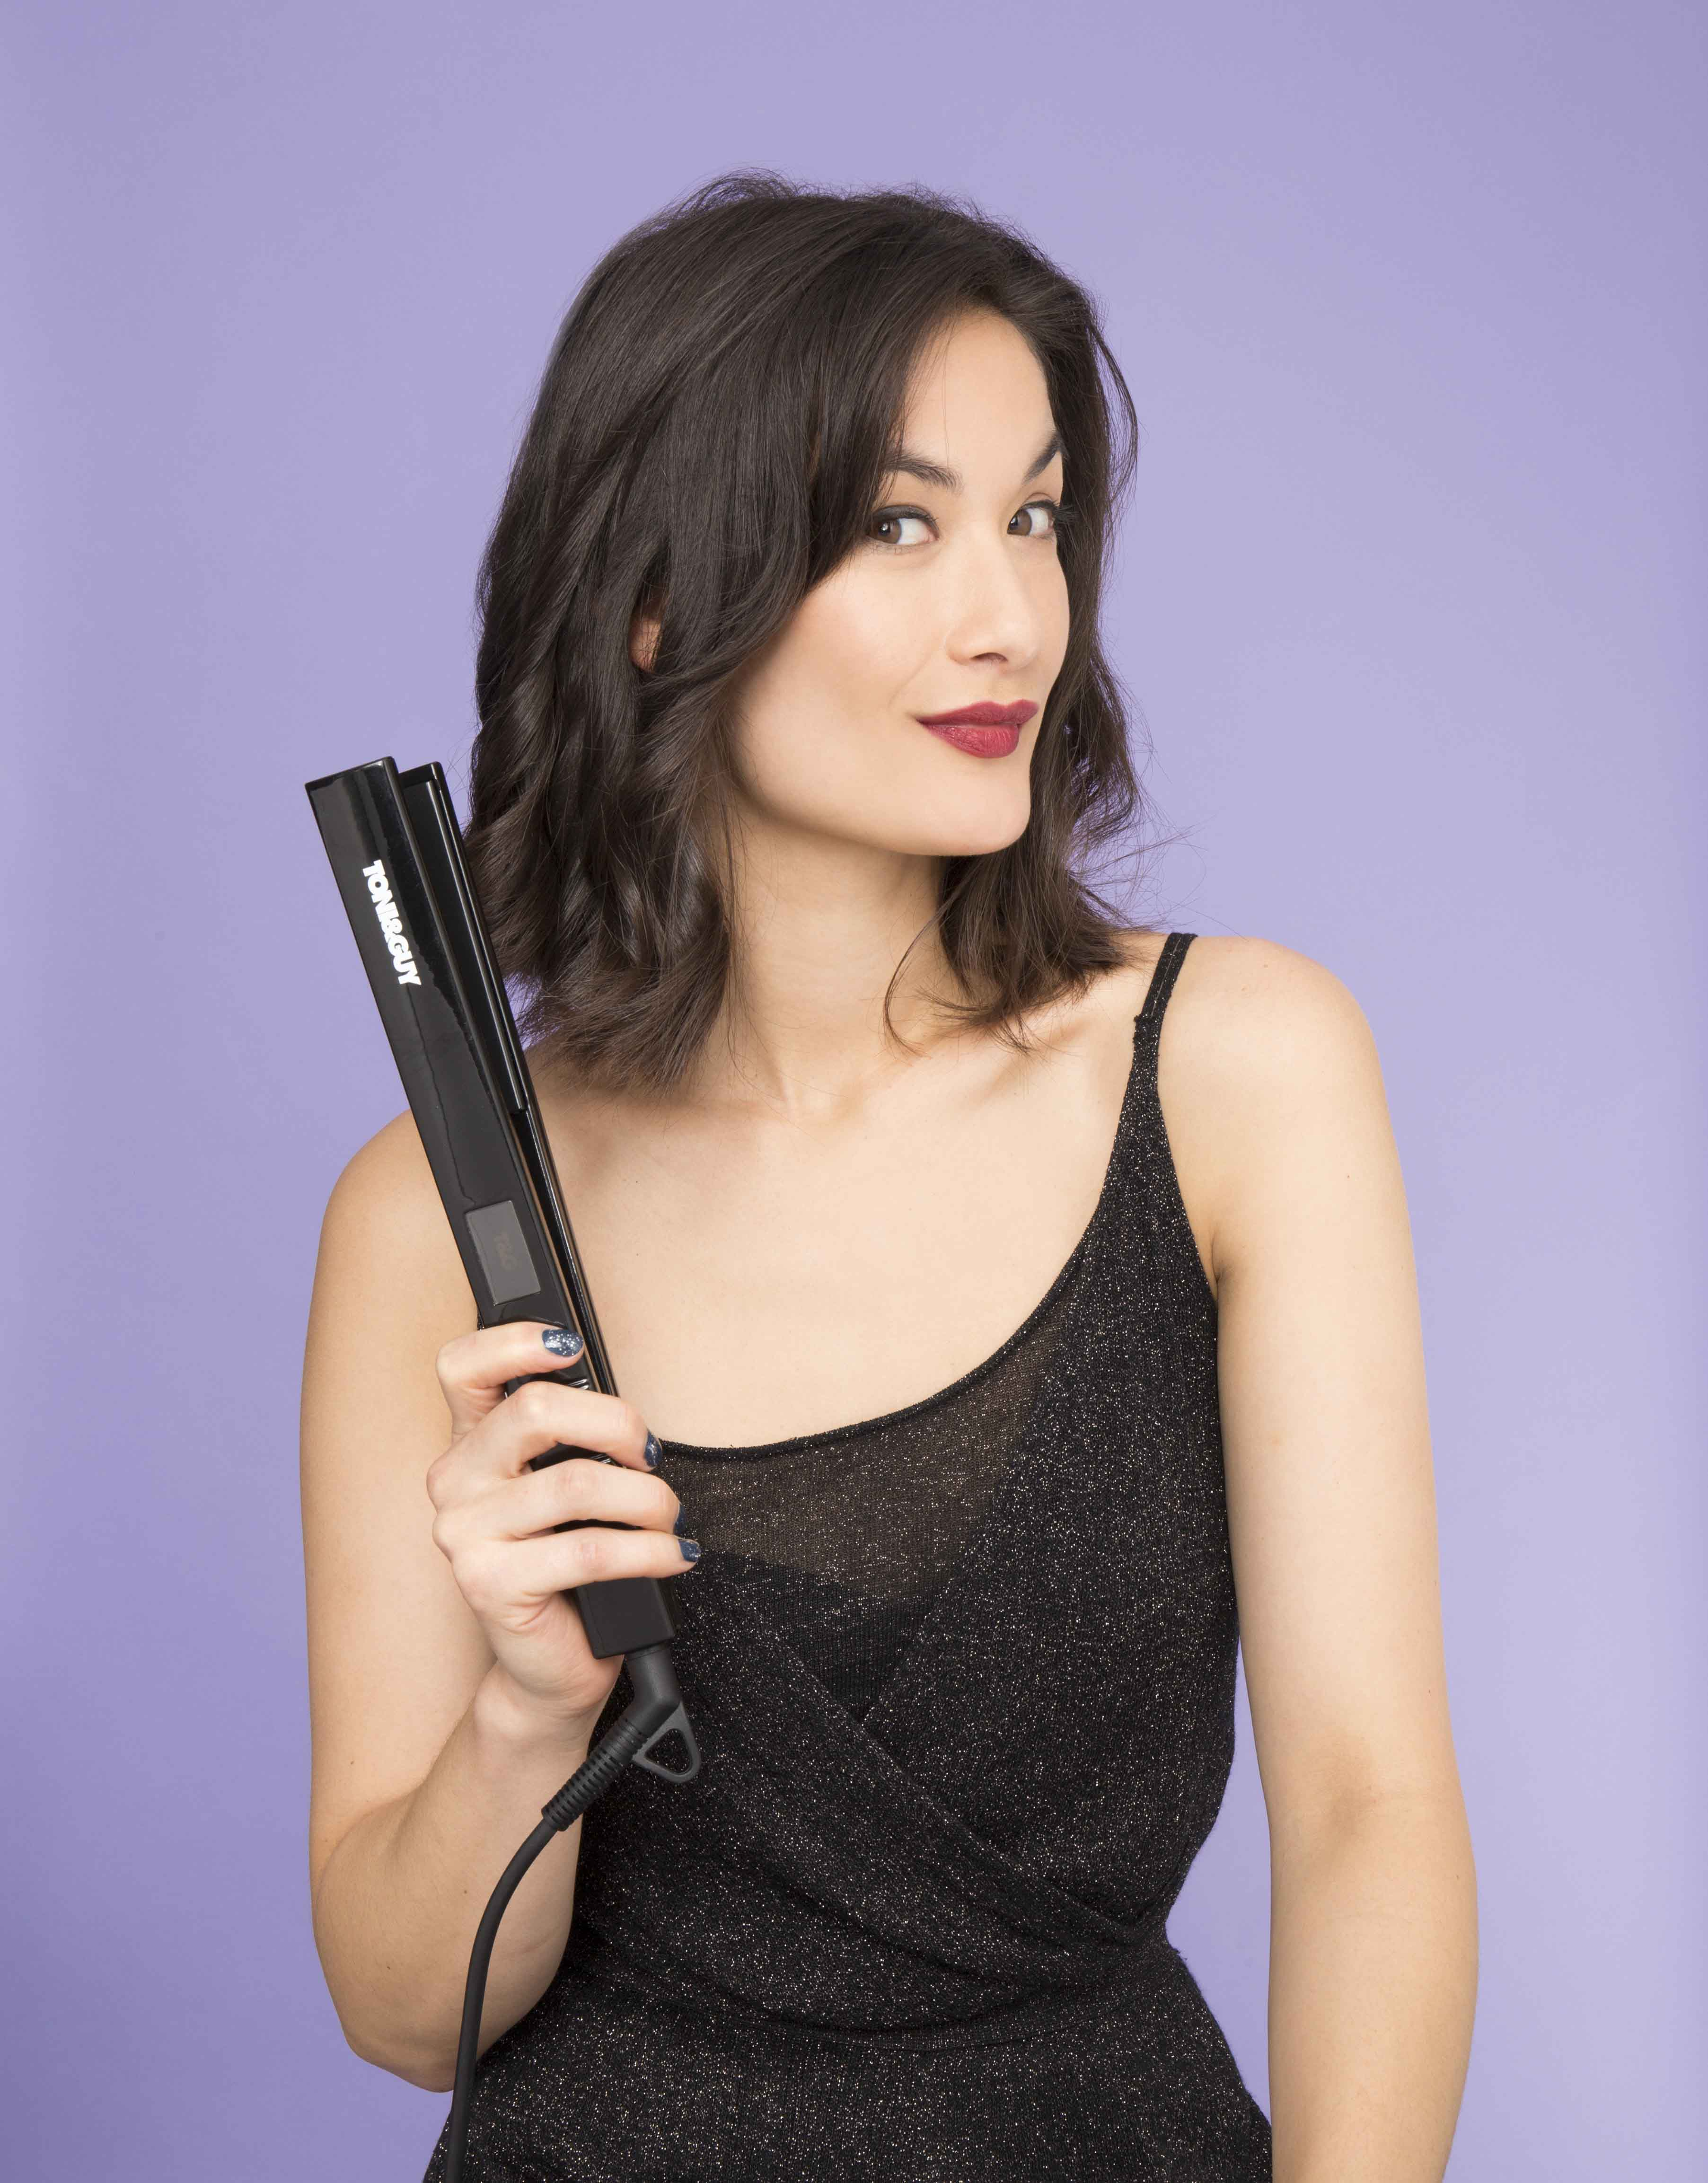 How to curl your short hair with a straightener: Young Asian woman with short black hair holding a straightener